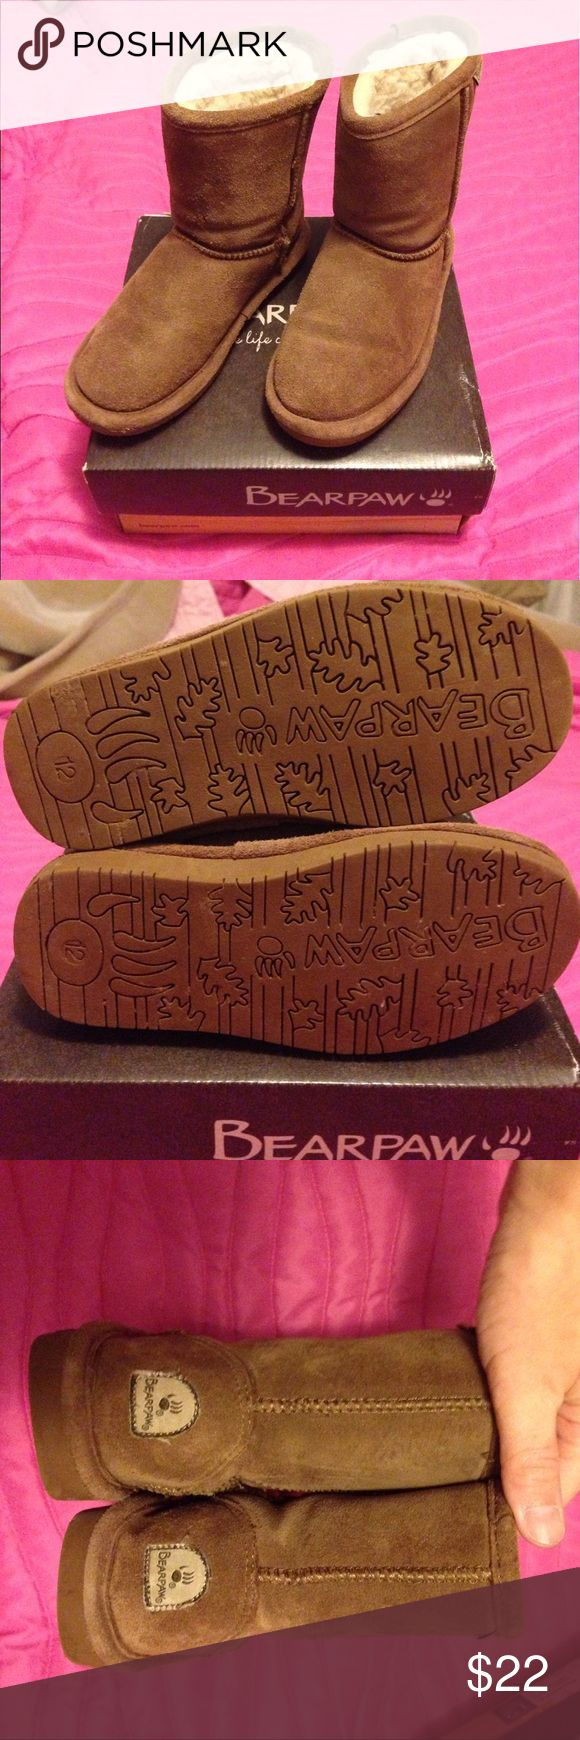 BearPaw Emma Toddler Size 12 EUC worn for one winter but not a whole lot ; sprayed with BearPaw water repellent; the color is 608T/Hickory II. Offers welcome. BearPaw Shoes Boots